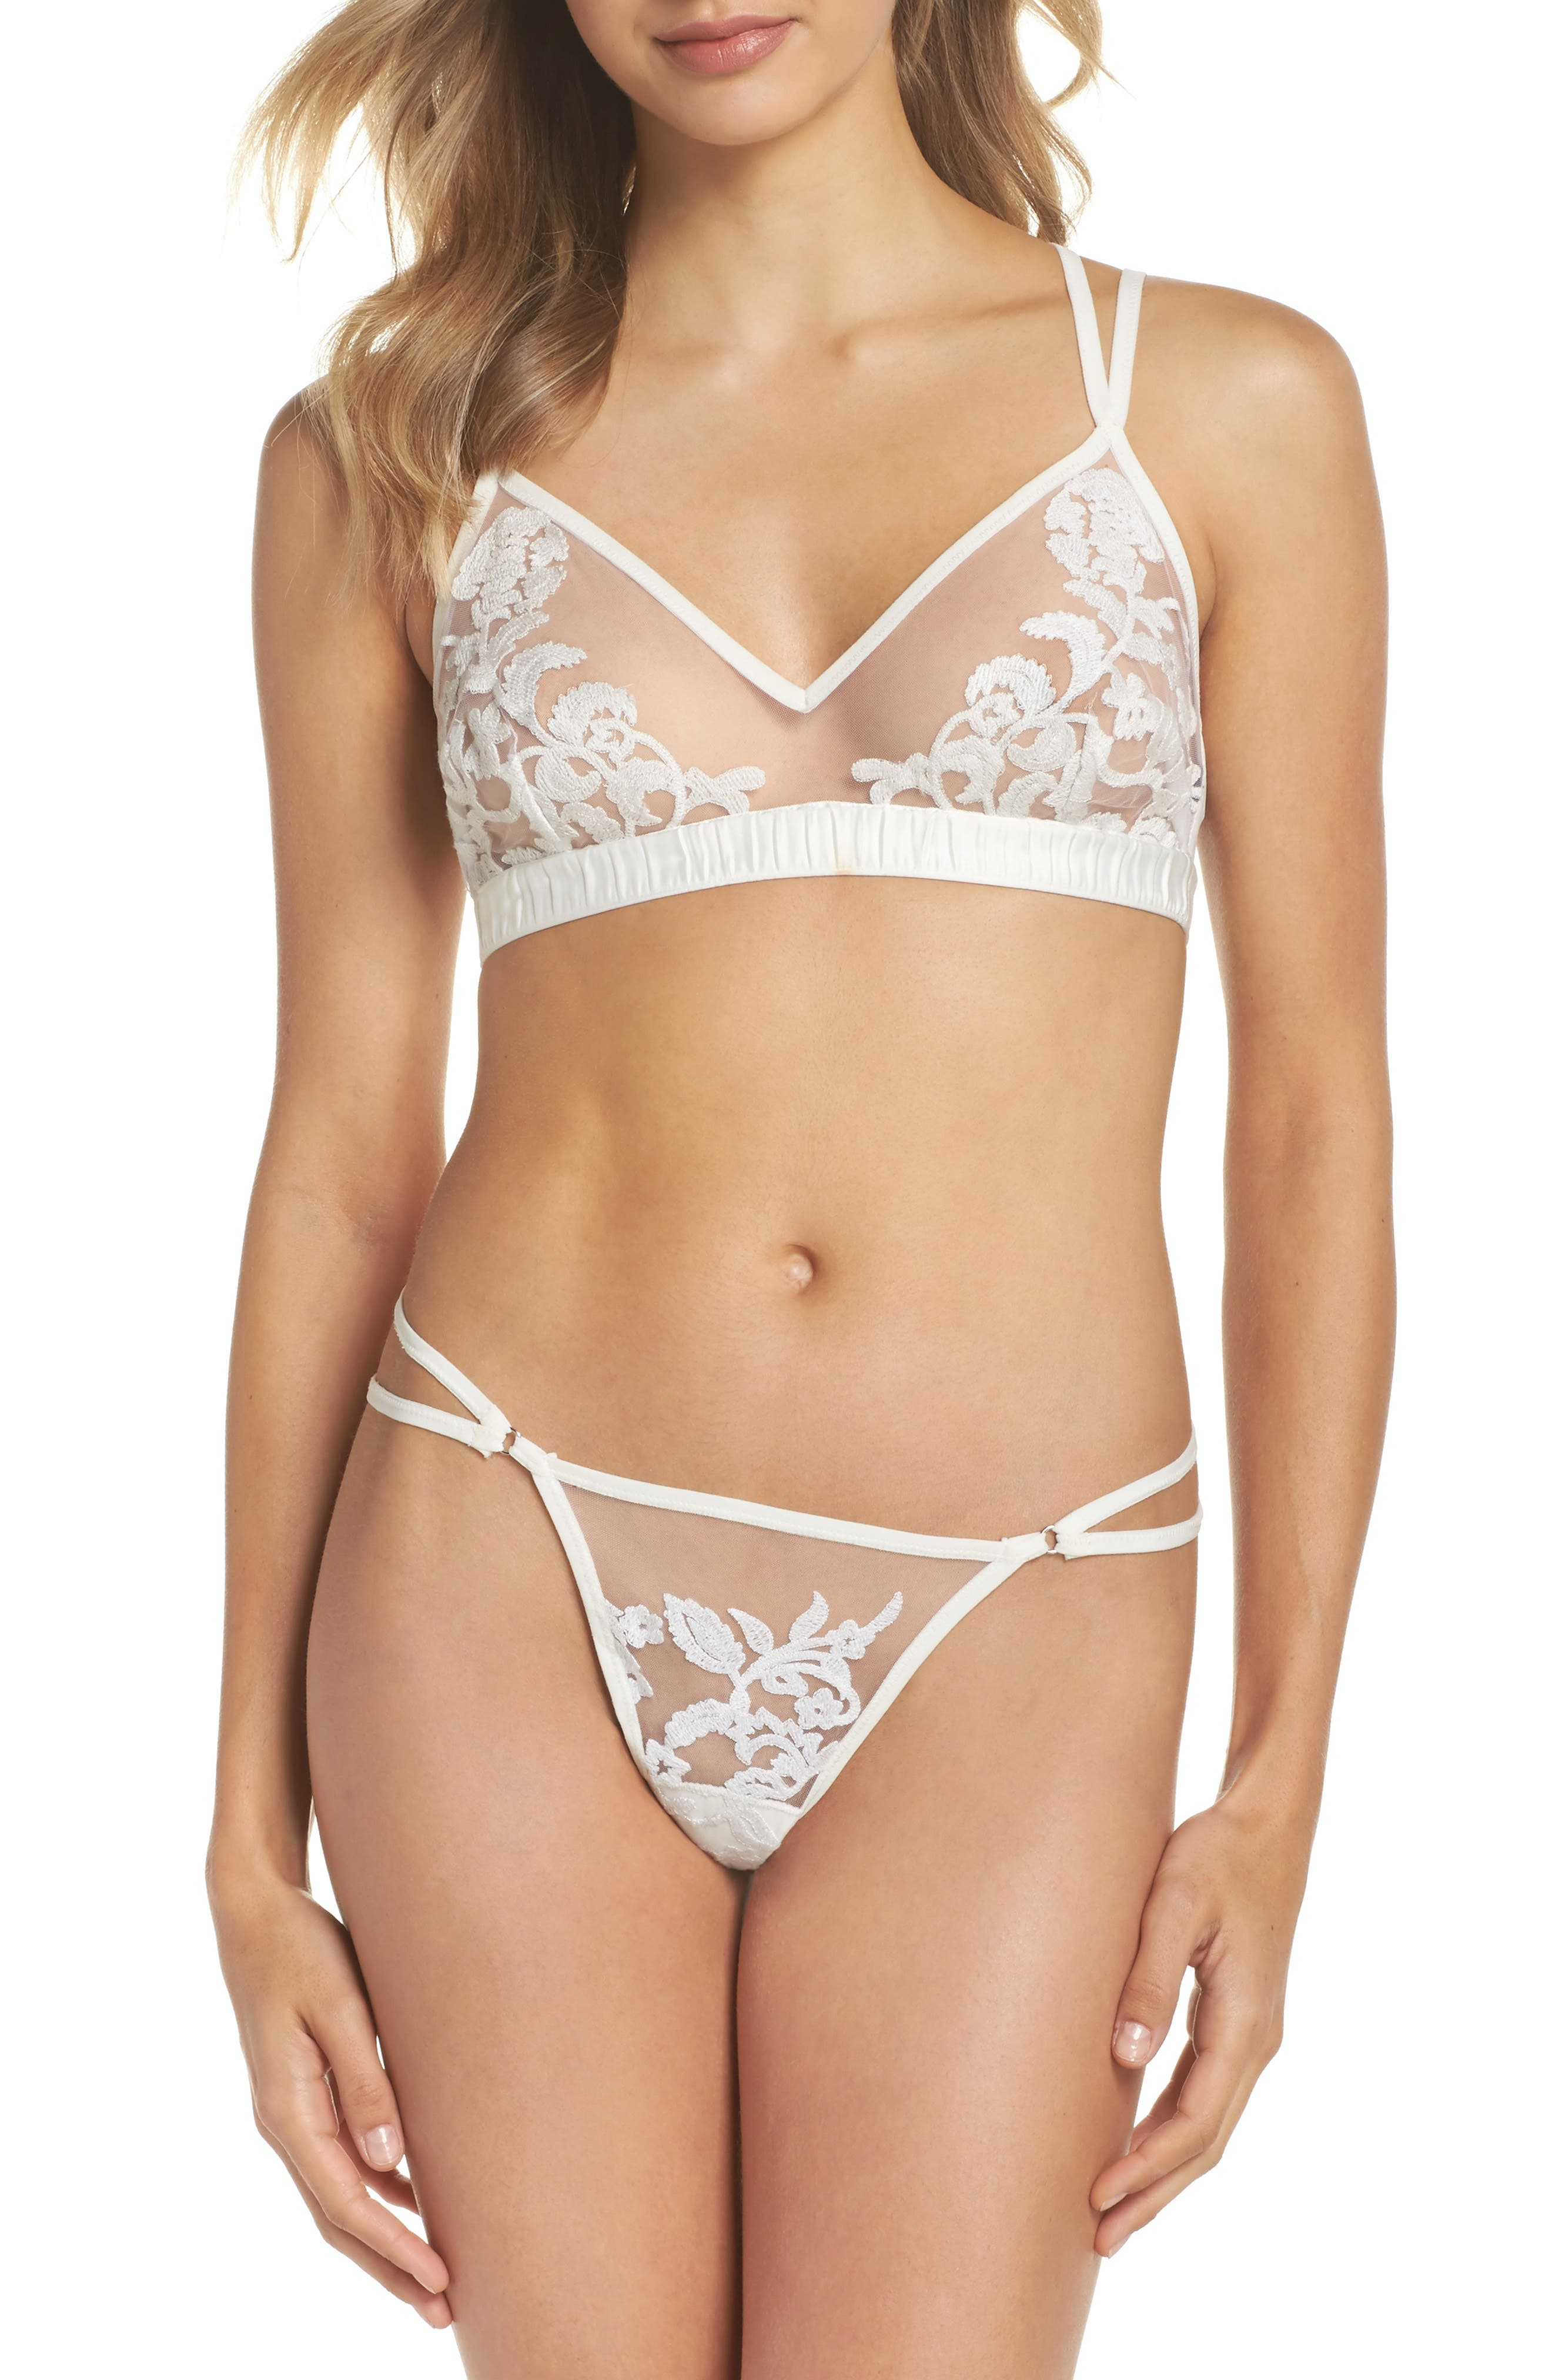 Thistle & Spire Cornelia Thong,                             Alternate thumbnail 5, color,                             Ivory